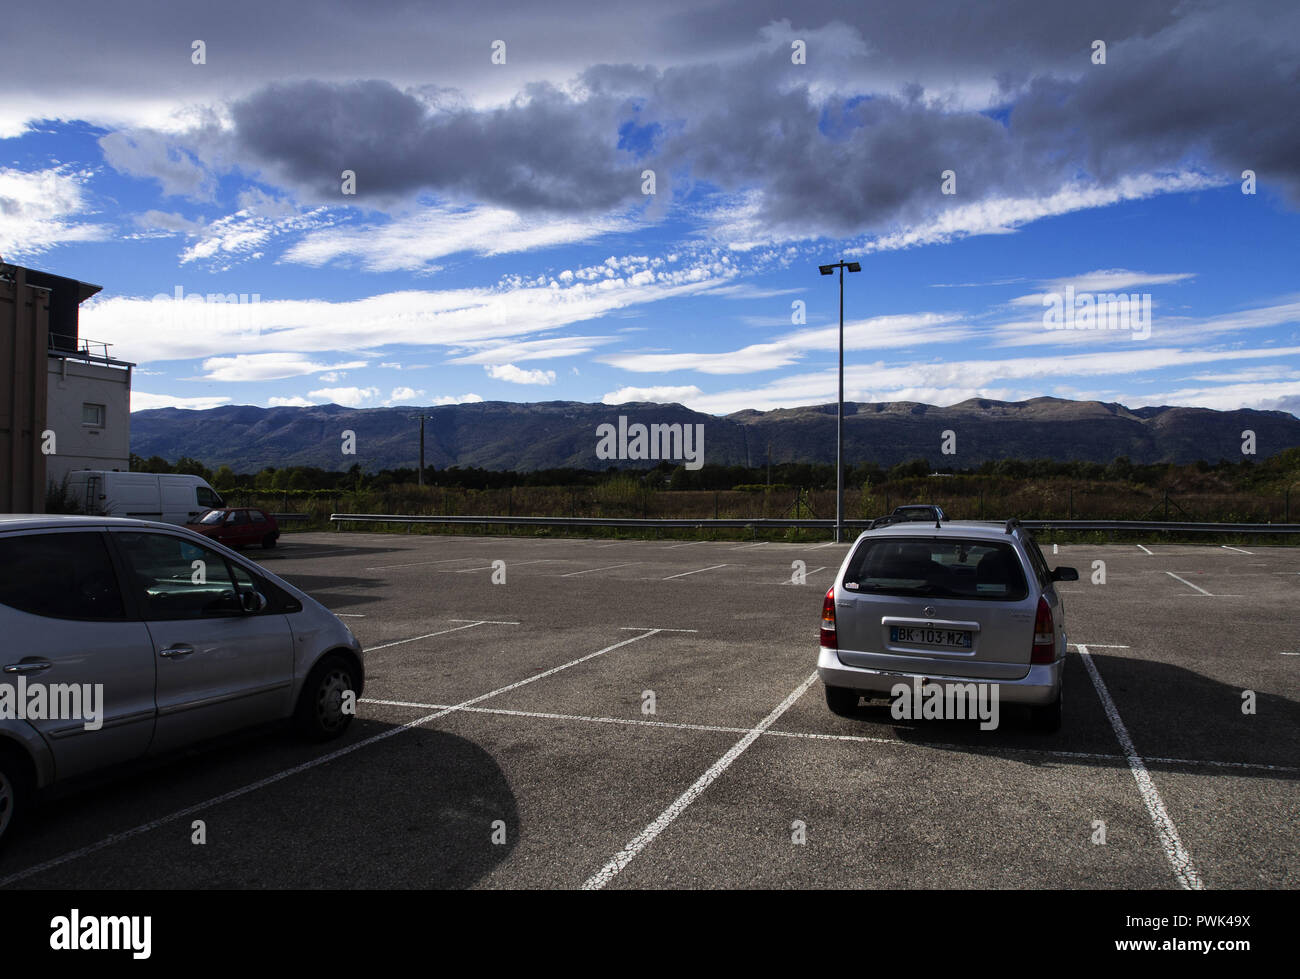 September 22, 2018 - Ferney-Voltaire, France - Parking ground seen next the Hotel F1. Hotel Formule 1, or hotelF1 in France, is an international chain of ''super low budget'' or ''no frills'' hotels owned by AccorHotels. Credit: Igor Golovniov/SOPA Images/ZUMA Wire/Alamy Live News - Stock Image